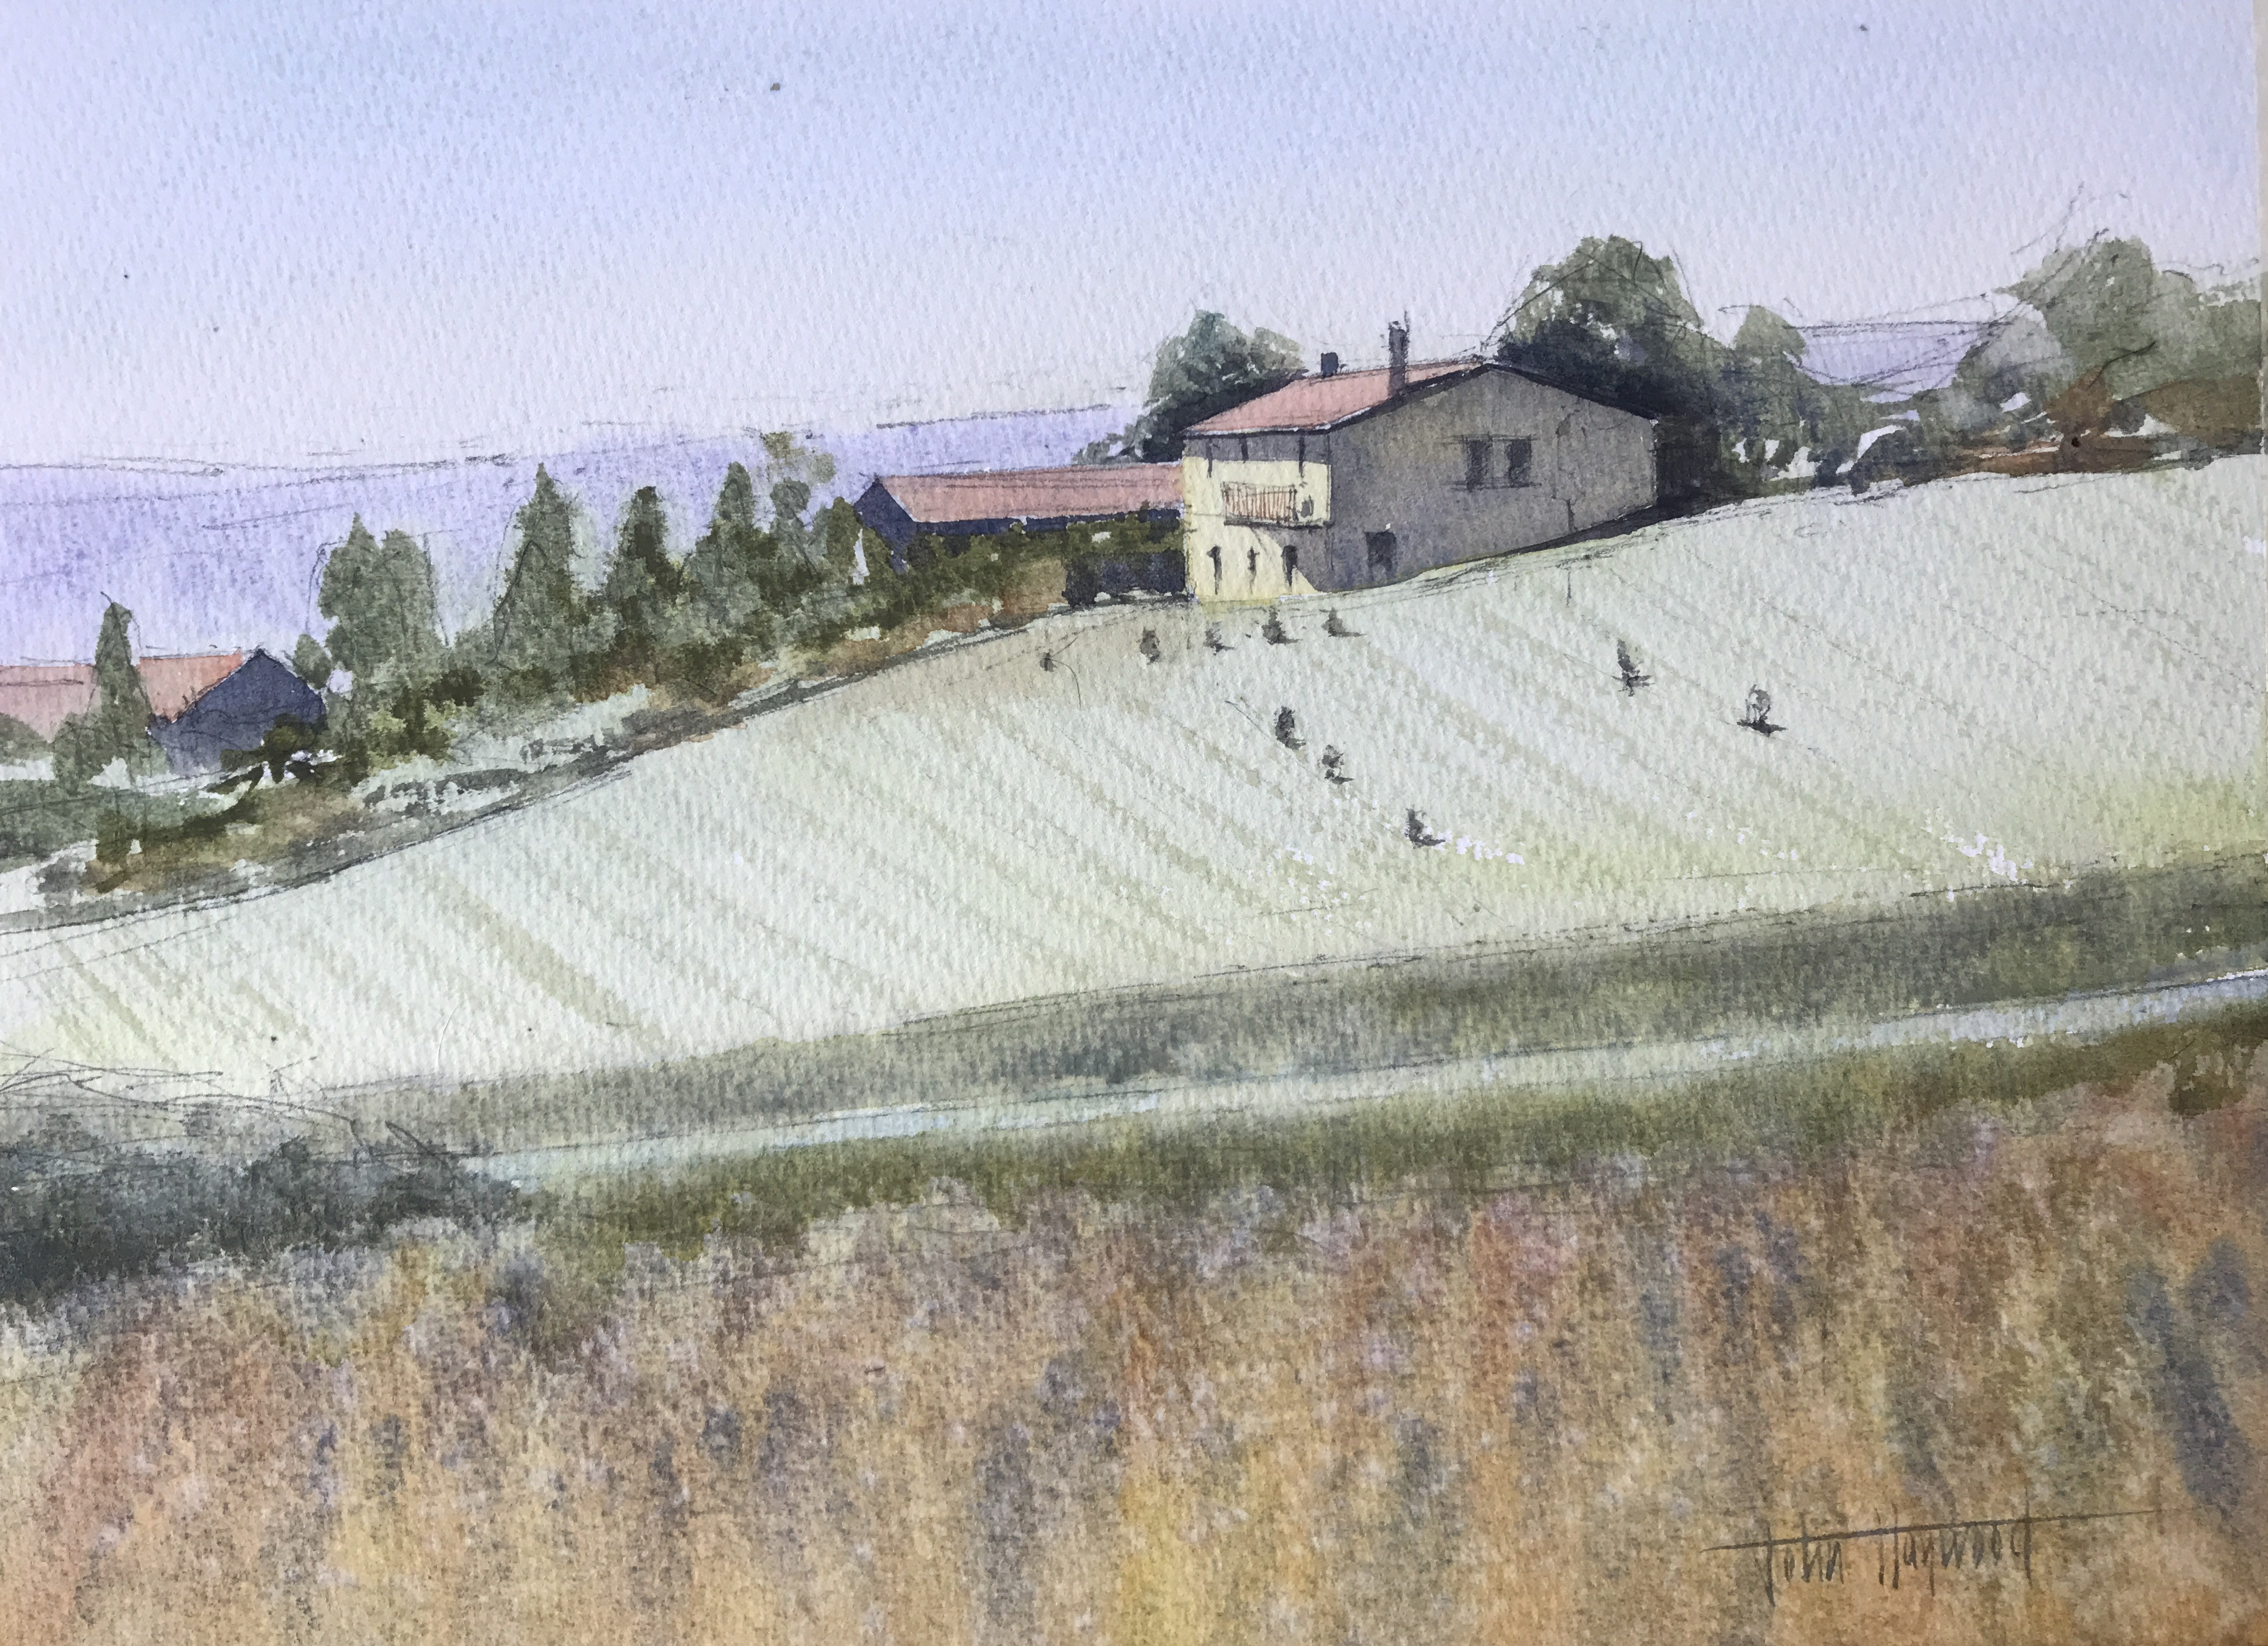 Watercolour painting of a House on hill in the Dordogne in France by artist John Haywood